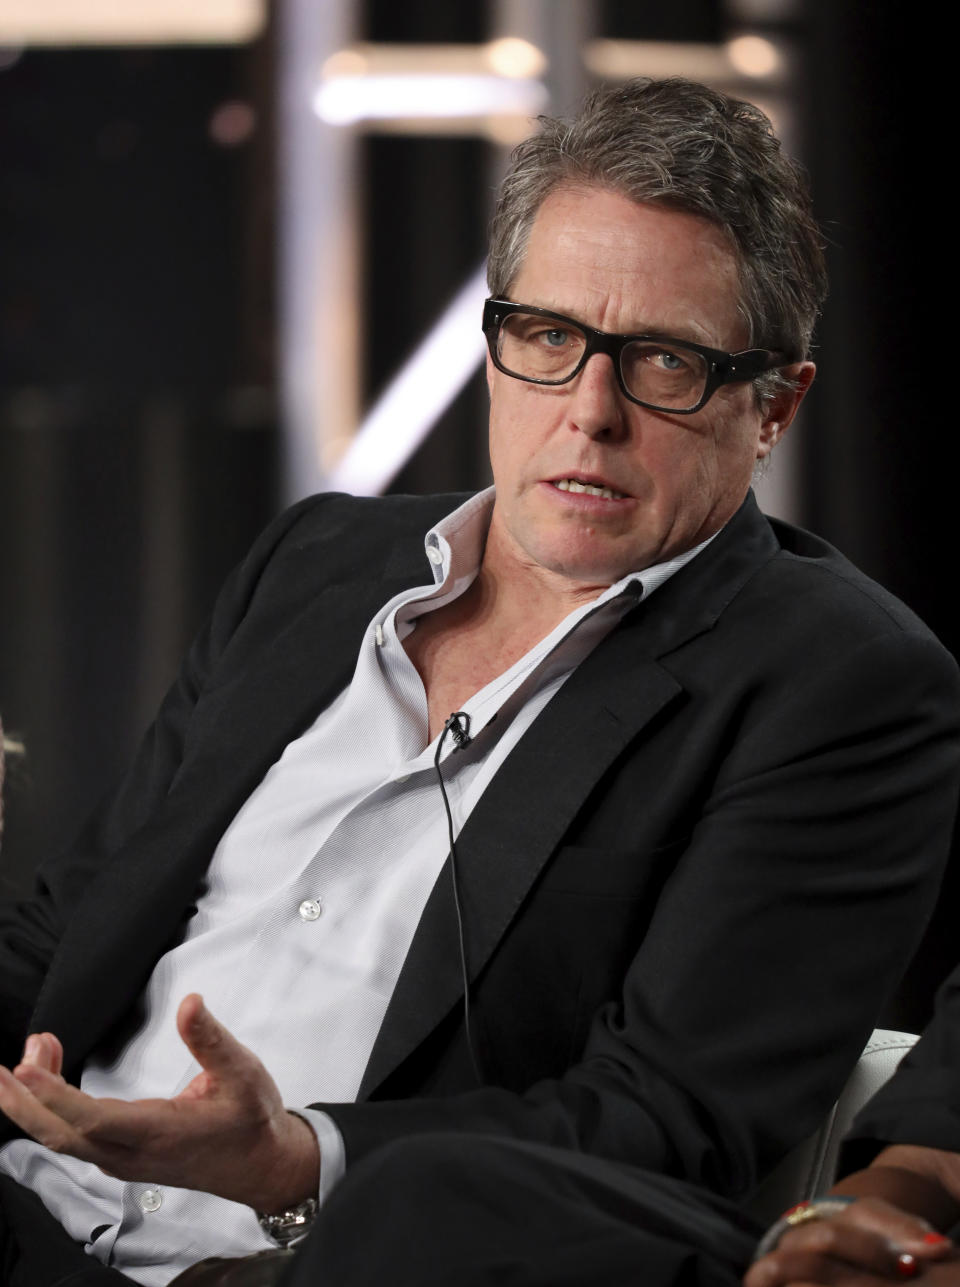 """Hugh Grant speaks at the """"The Undoing"""" panel during the HBO TCA 2020 Winter Press Tour at the Langham Huntington on Wednesday, Jan. 15, 2020, in Pasadena, Calif. (Photo by Willy Sanjuan/Invision/AP)"""